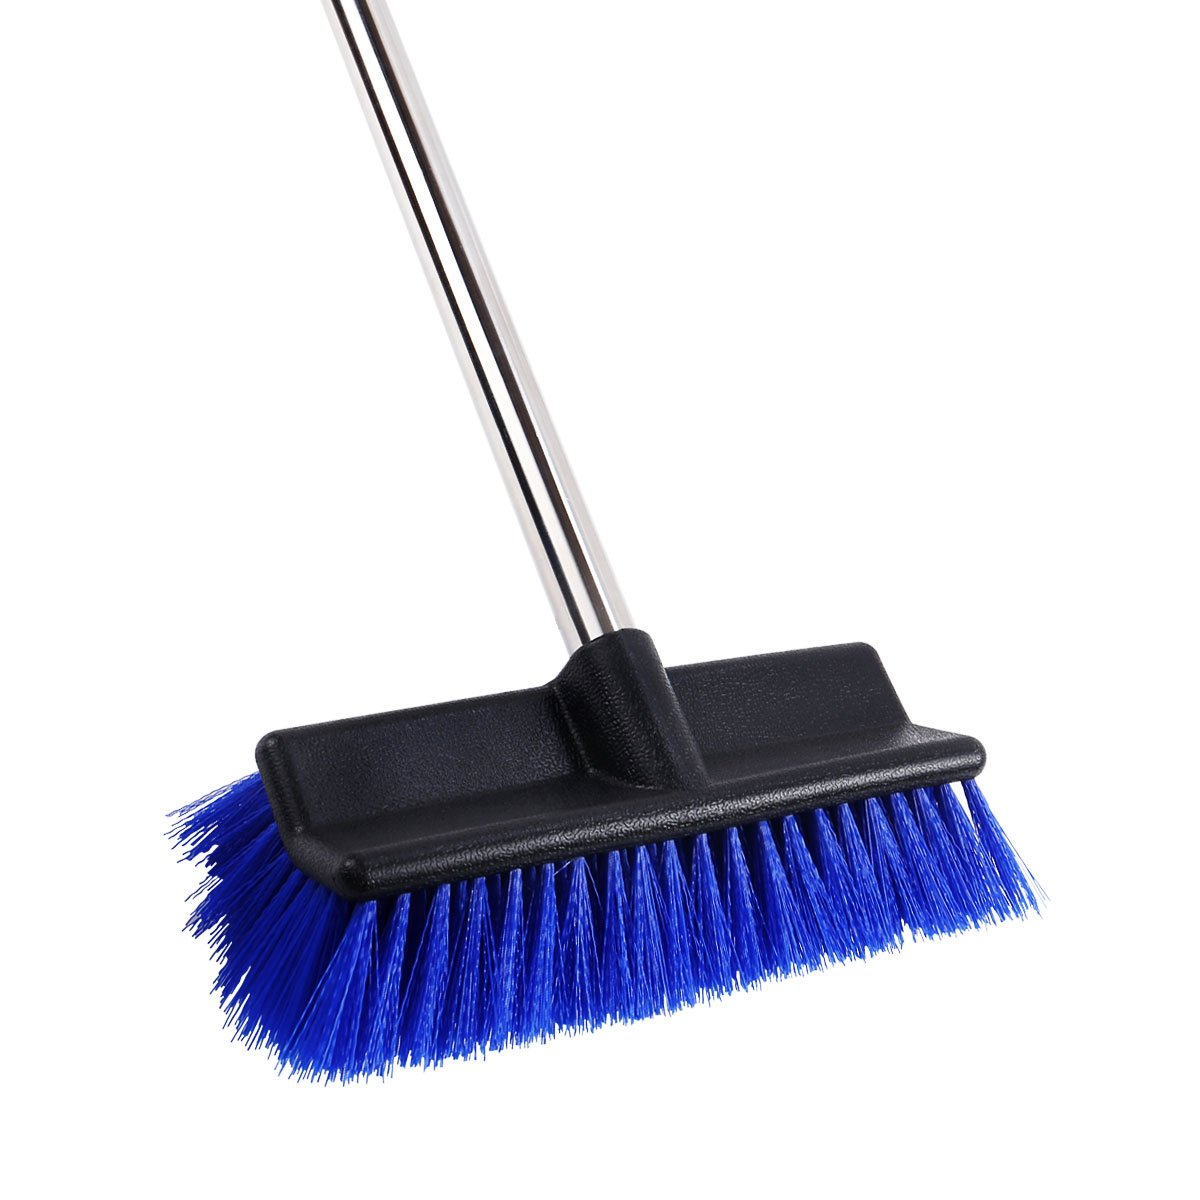 MEIBEI Deck Brush, Heavy Duty Deck Scrubber with Adjustable Stainless Steel Long Handle-51 Inches, Commercial Floor Scrub Brush, Perfect for Cleaning Deck, Patio, Hallway, Driveway and Boat by MEIBEI